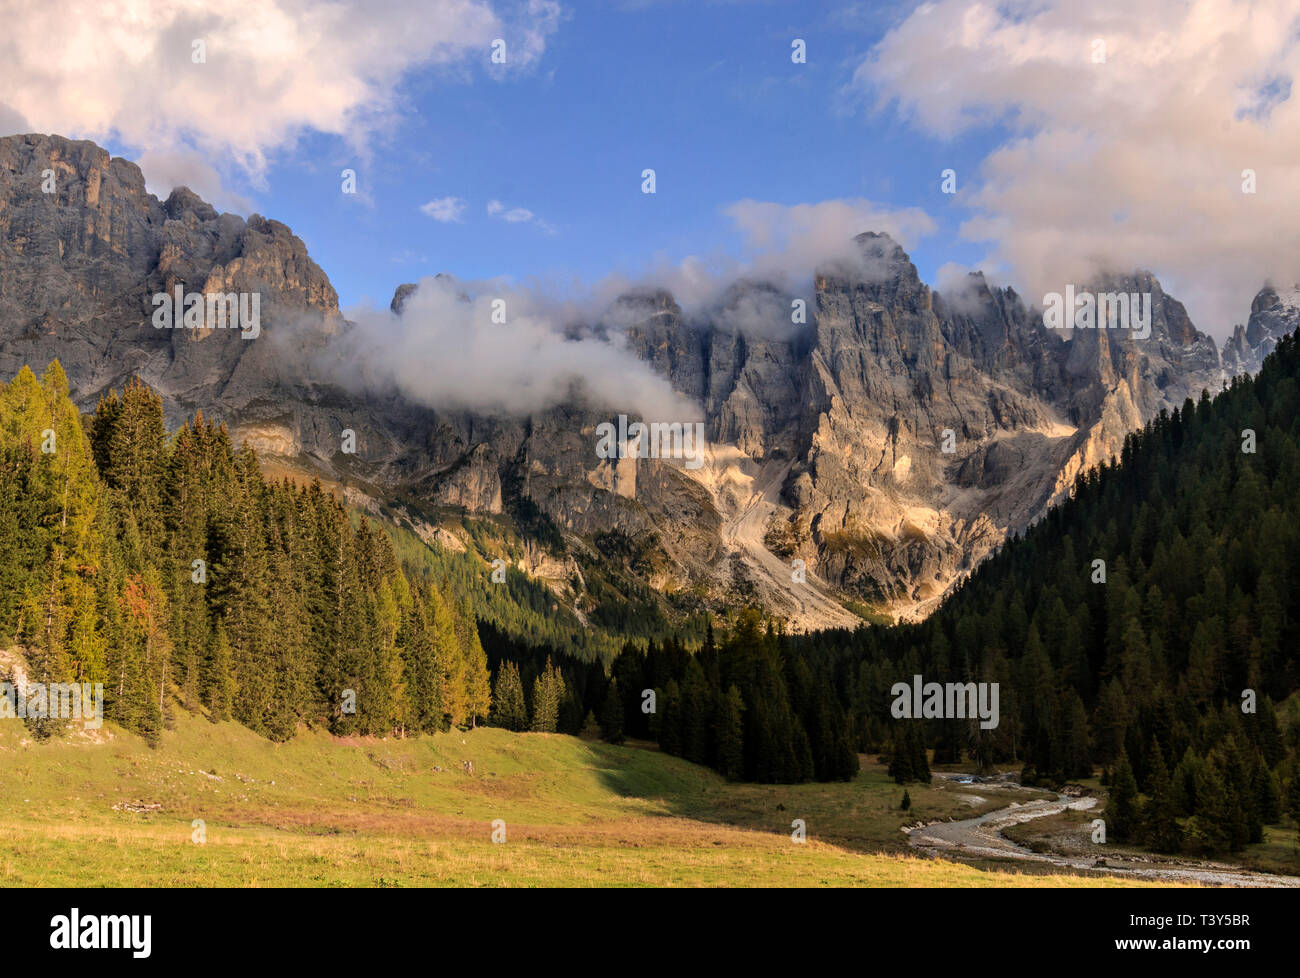 Val Vinegia, a small valley just below the high altitude pass of Passo Rolle in the Pale di San Martino group, Dolomites, Italy. taken about 1 hour be - Stock Image